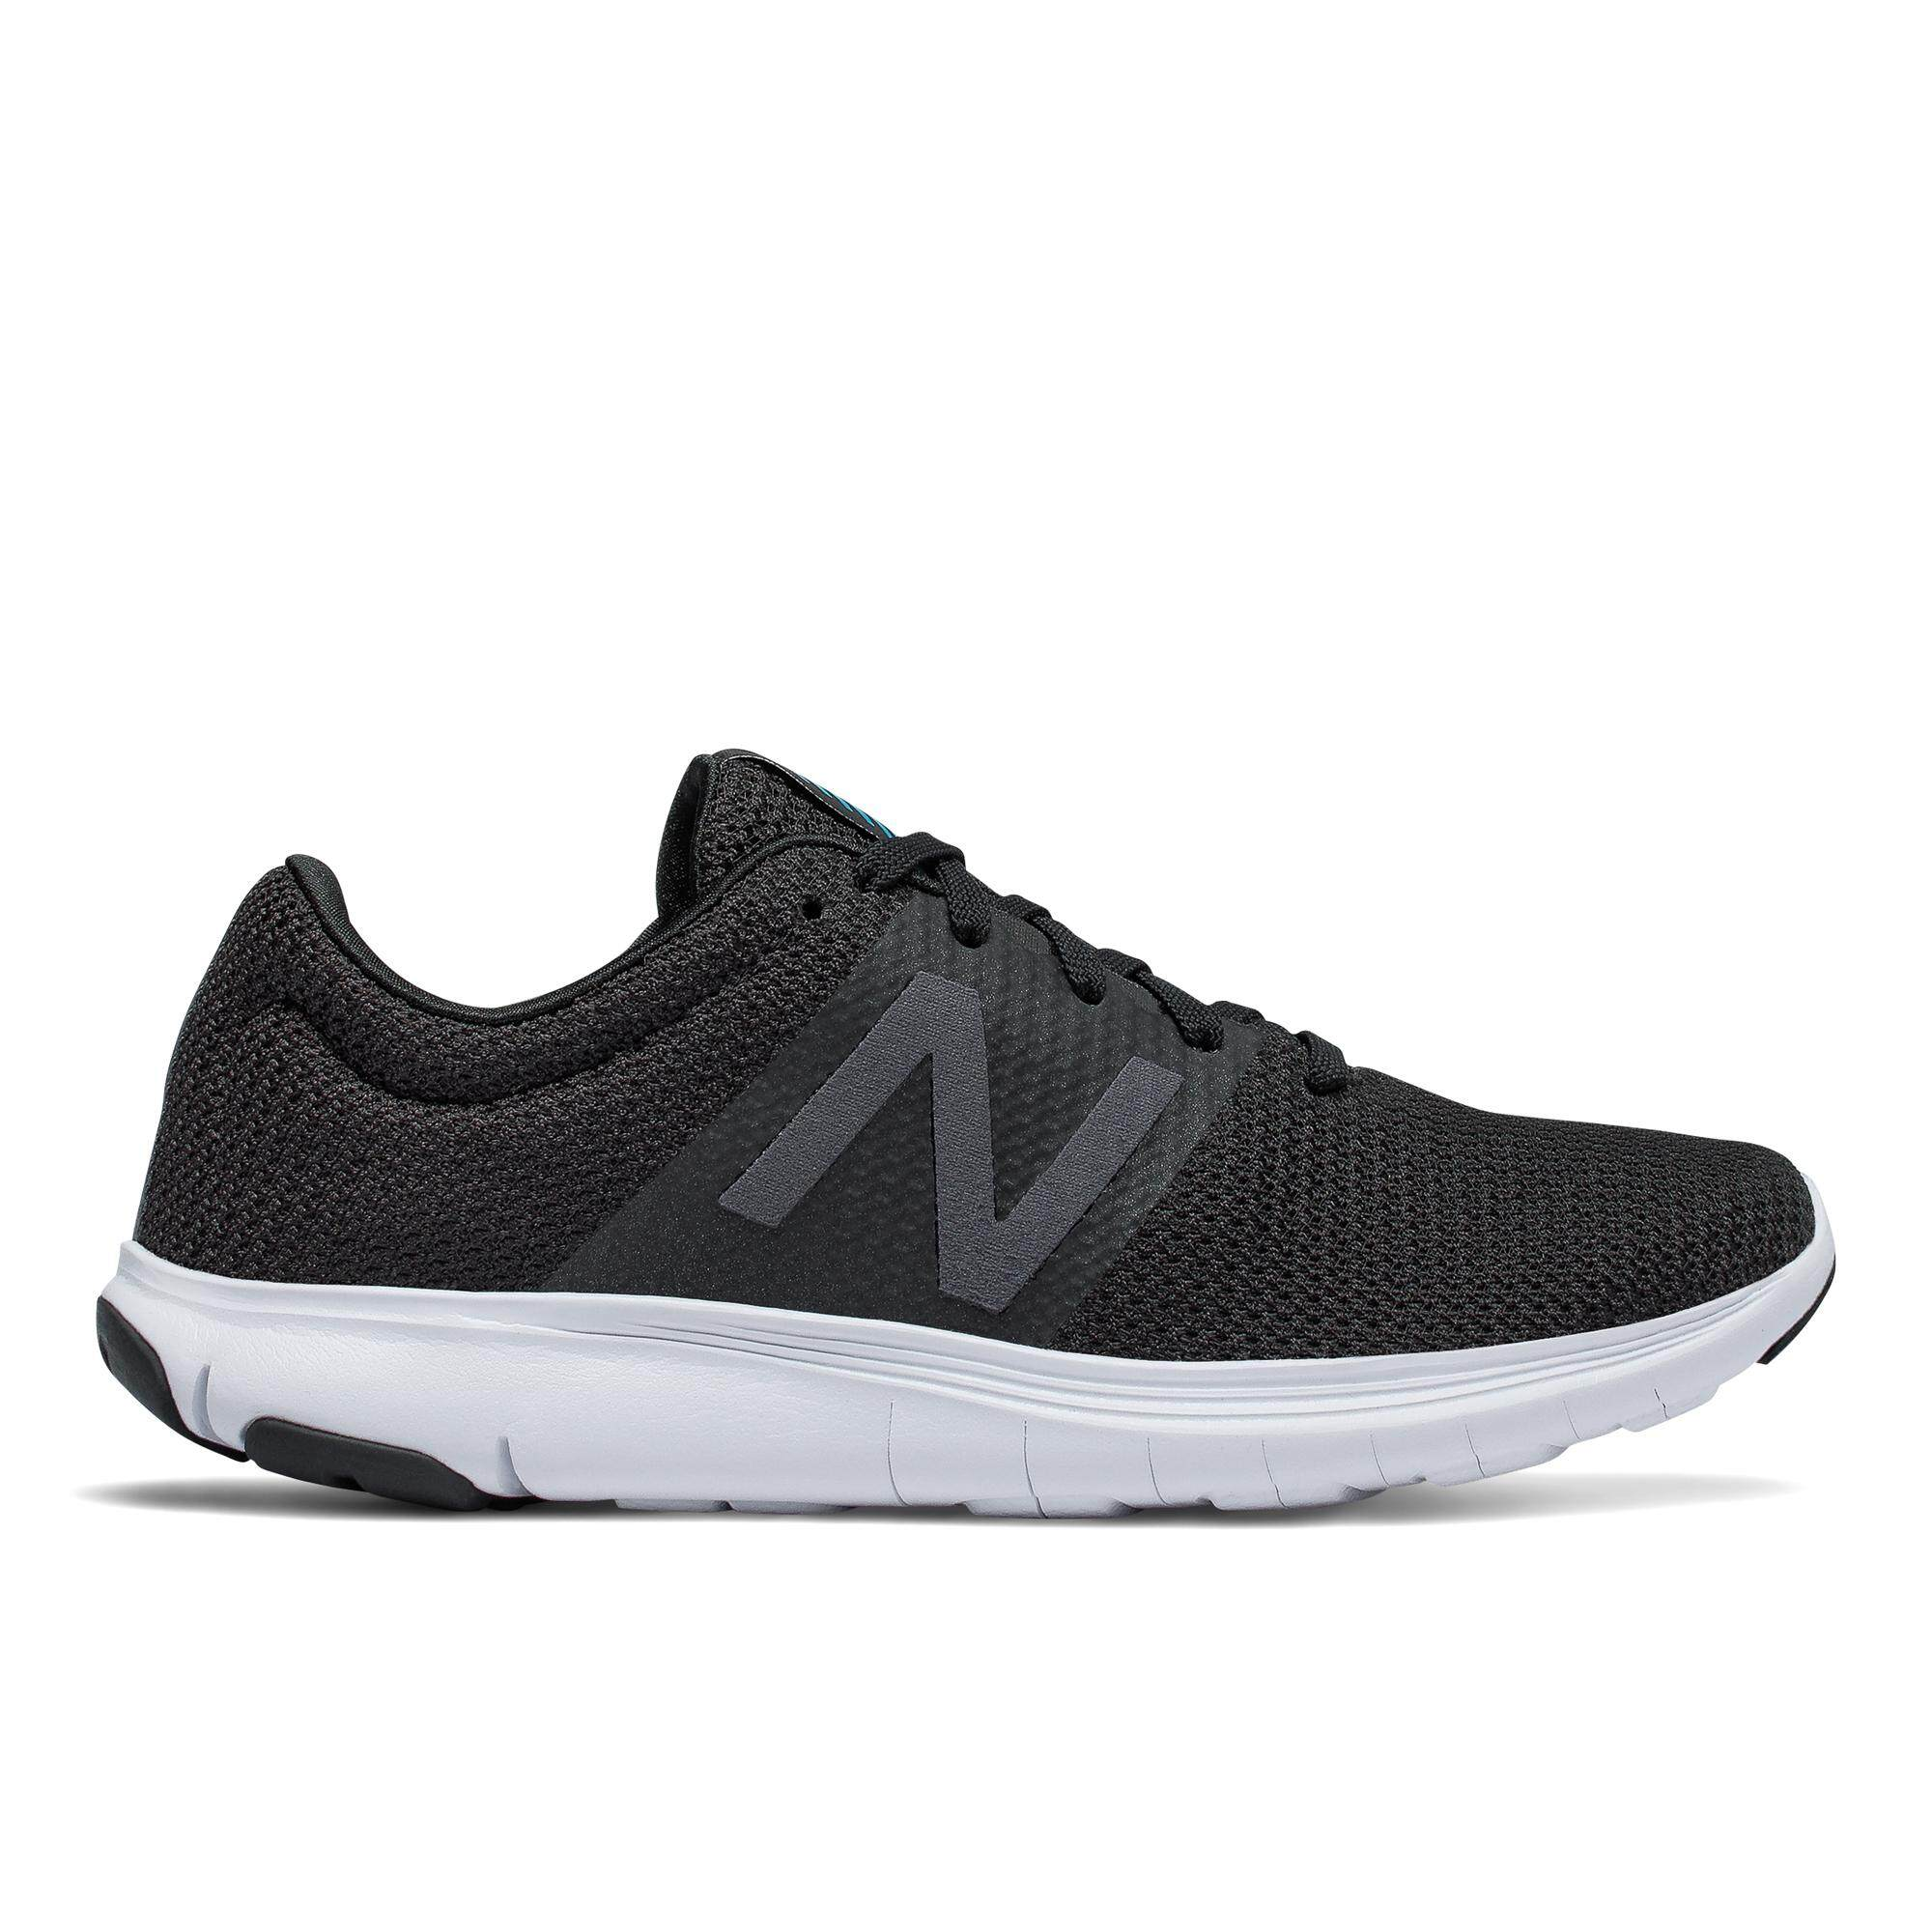 New Balance Official Store - Buy New Balance Official Store at Best ... 289d6bf585